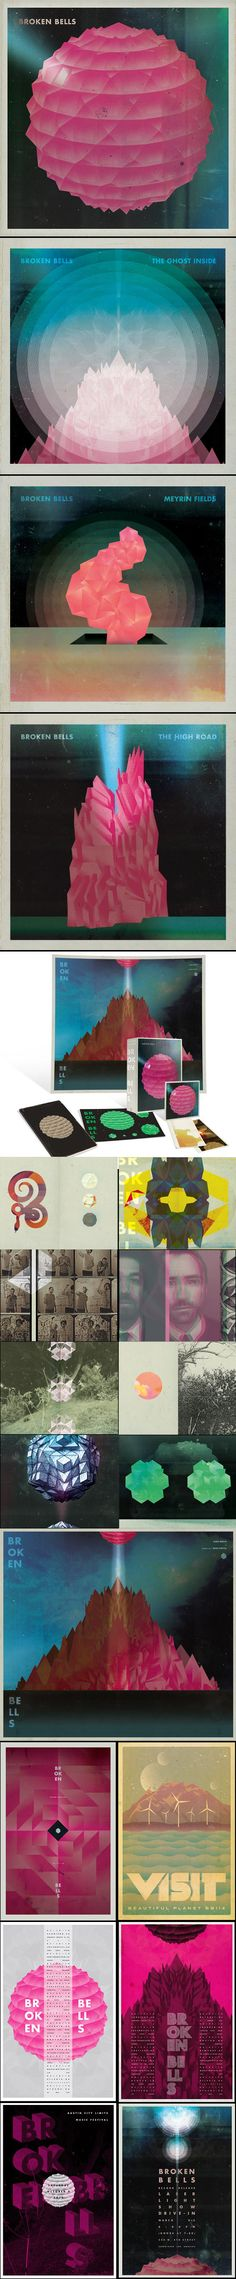 Broken Bells - 2010 - Complete Covers Collection - Jacob Escobedo -----